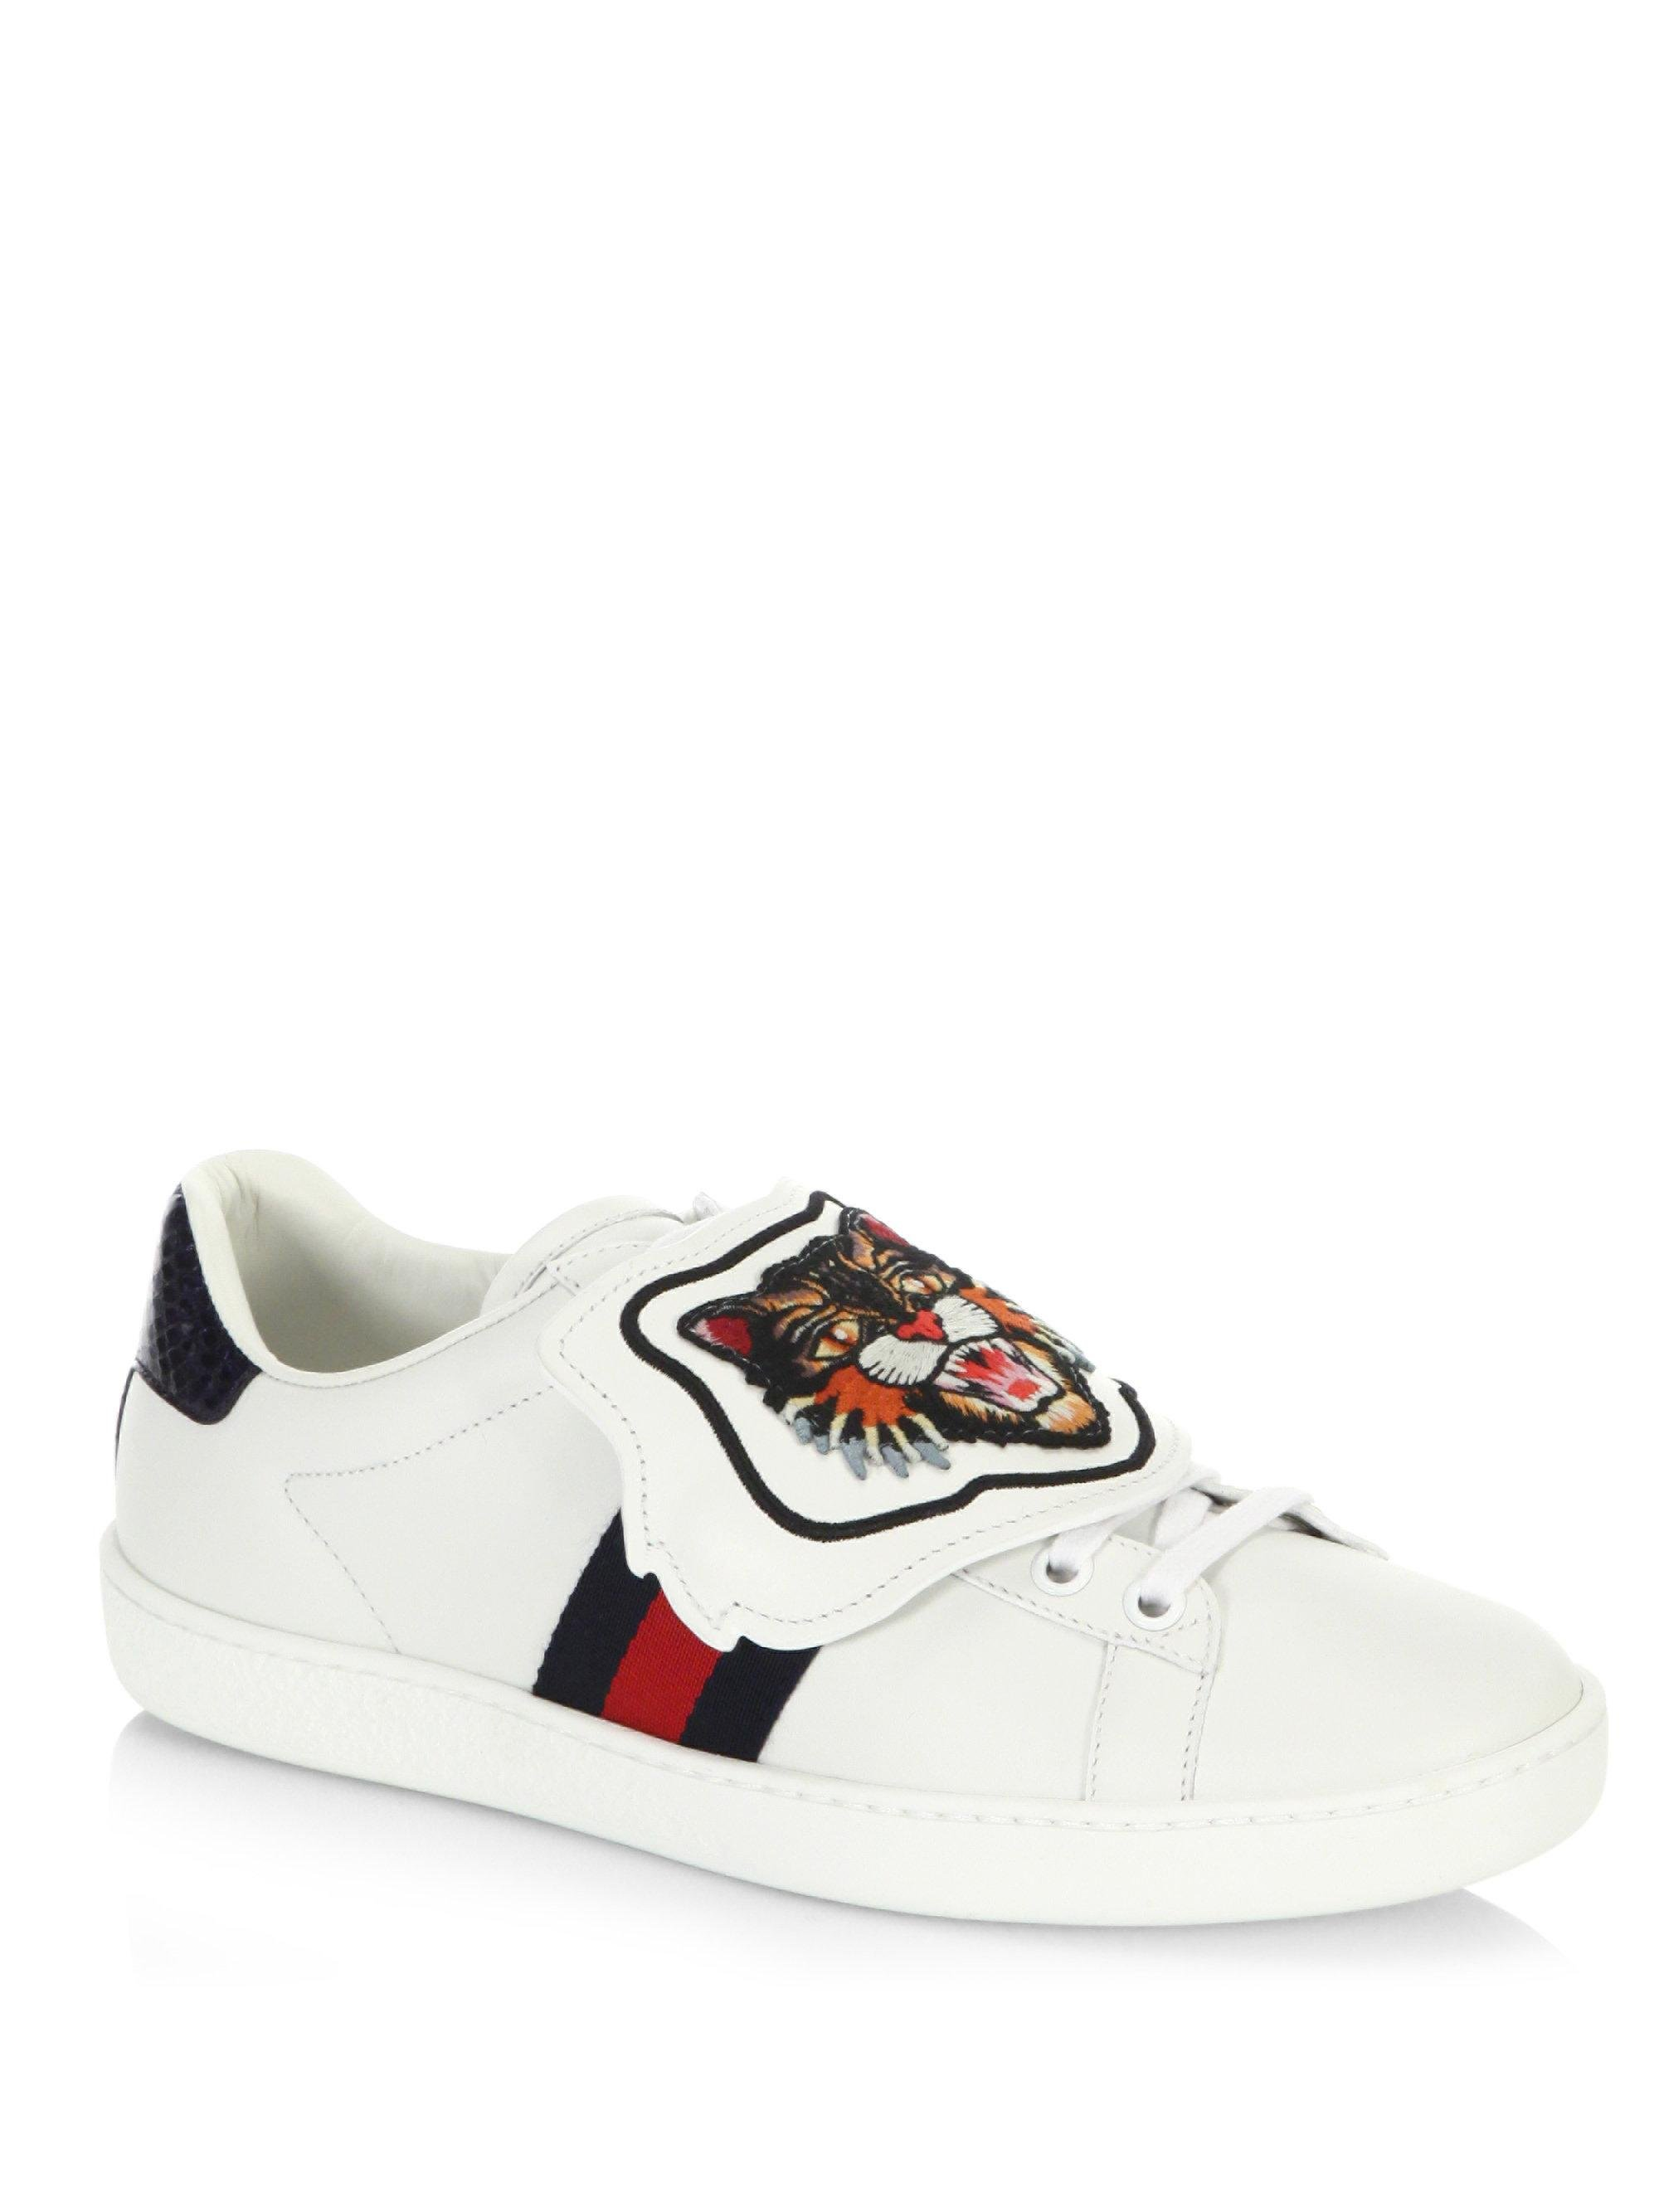 37fbf3e9b Gucci New Ace Lion Patch Sneakers in White - Lyst